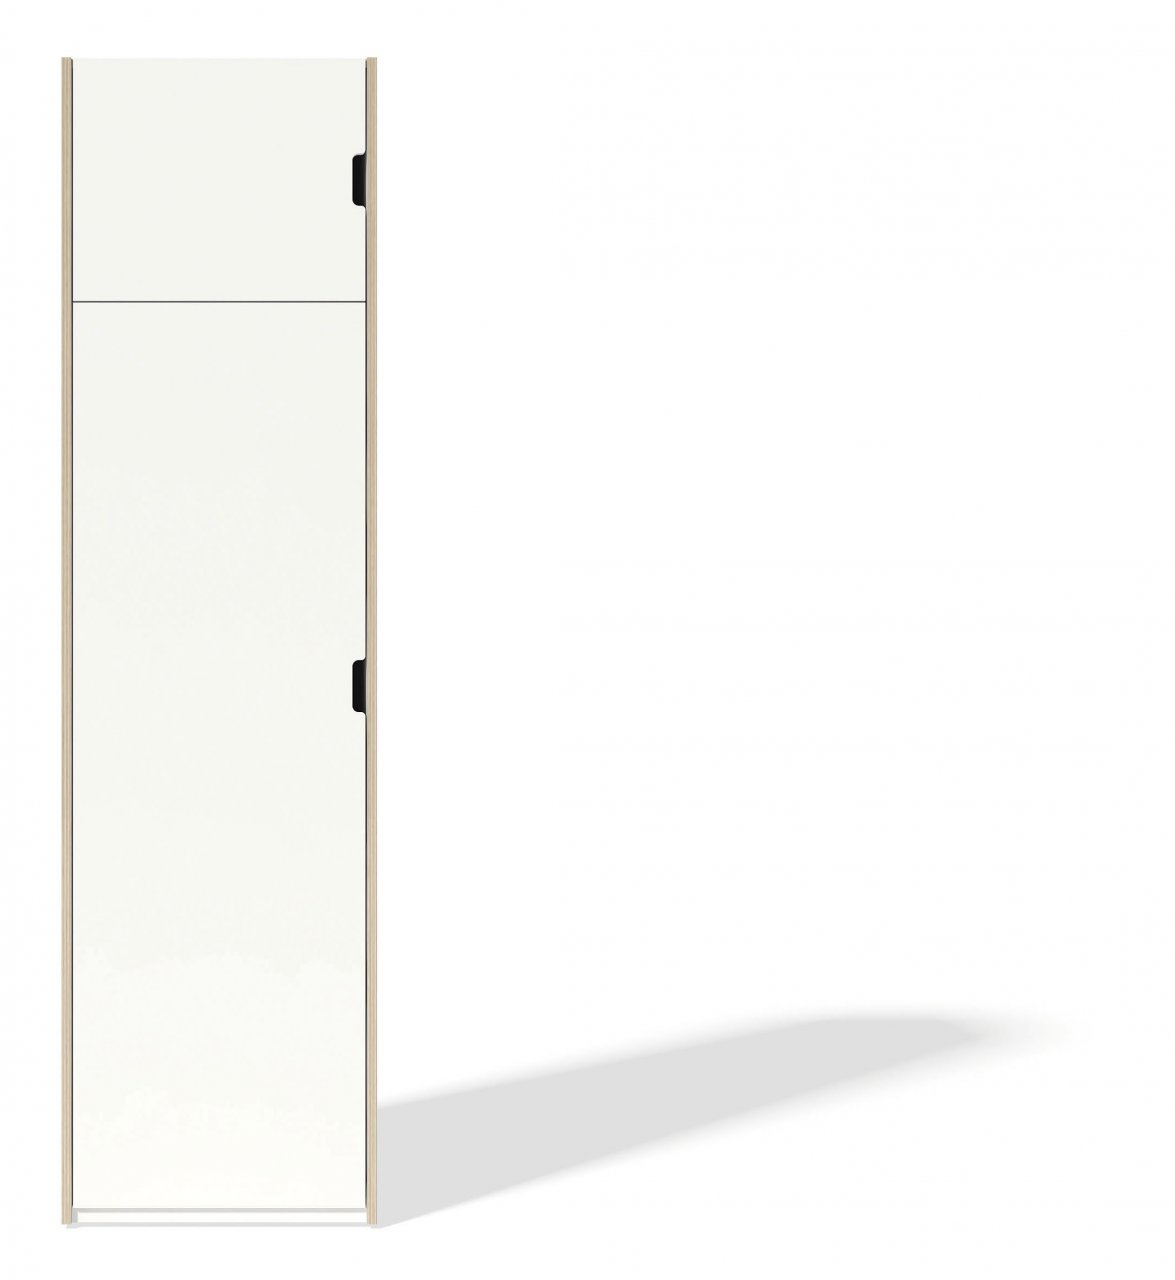 MODULAR Kleiderschrank Version 10